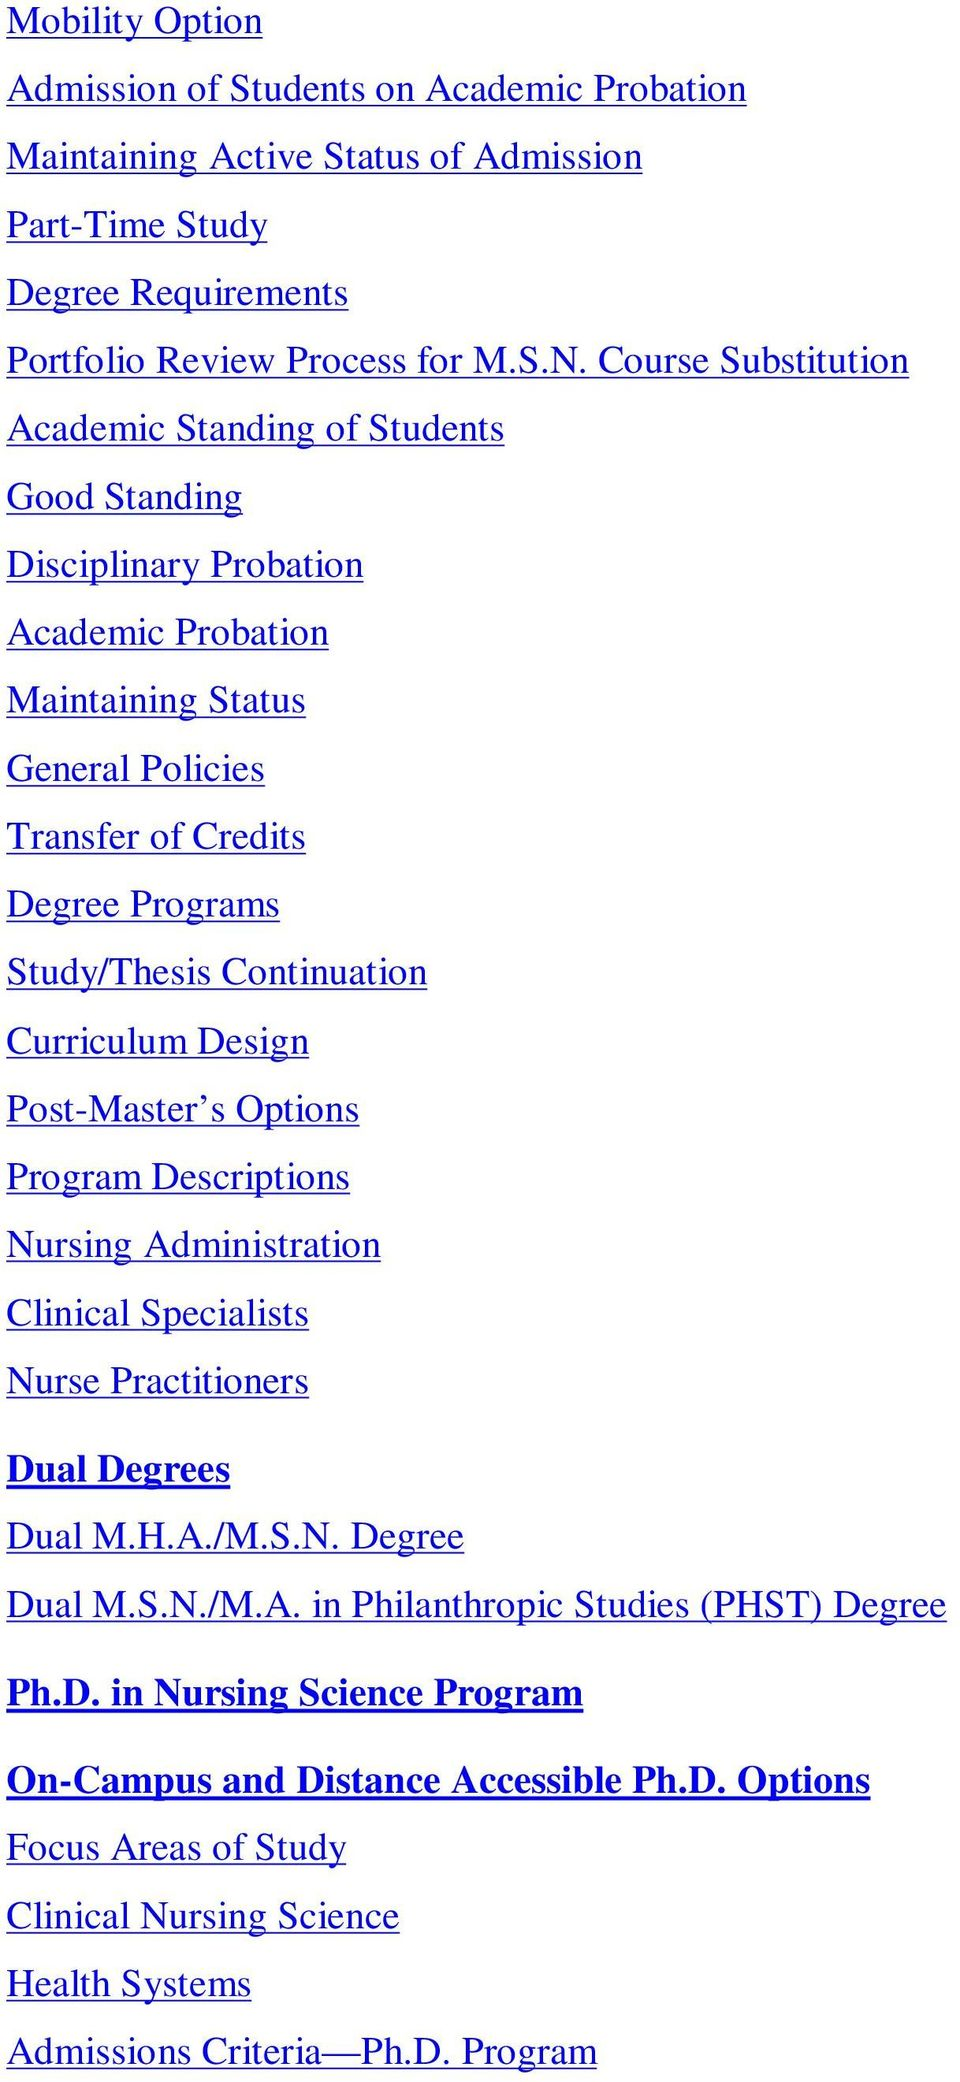 Continuation Curriculum Design Post-Master s Options Program Descriptions Nursing Administration Clinical Specialists Nurse Practitioners Dual Degrees Dual M.H.A./M.S.N. Degree Dual M.S.N./M.A. in Philanthropic Studies (PHST) Degree Ph.